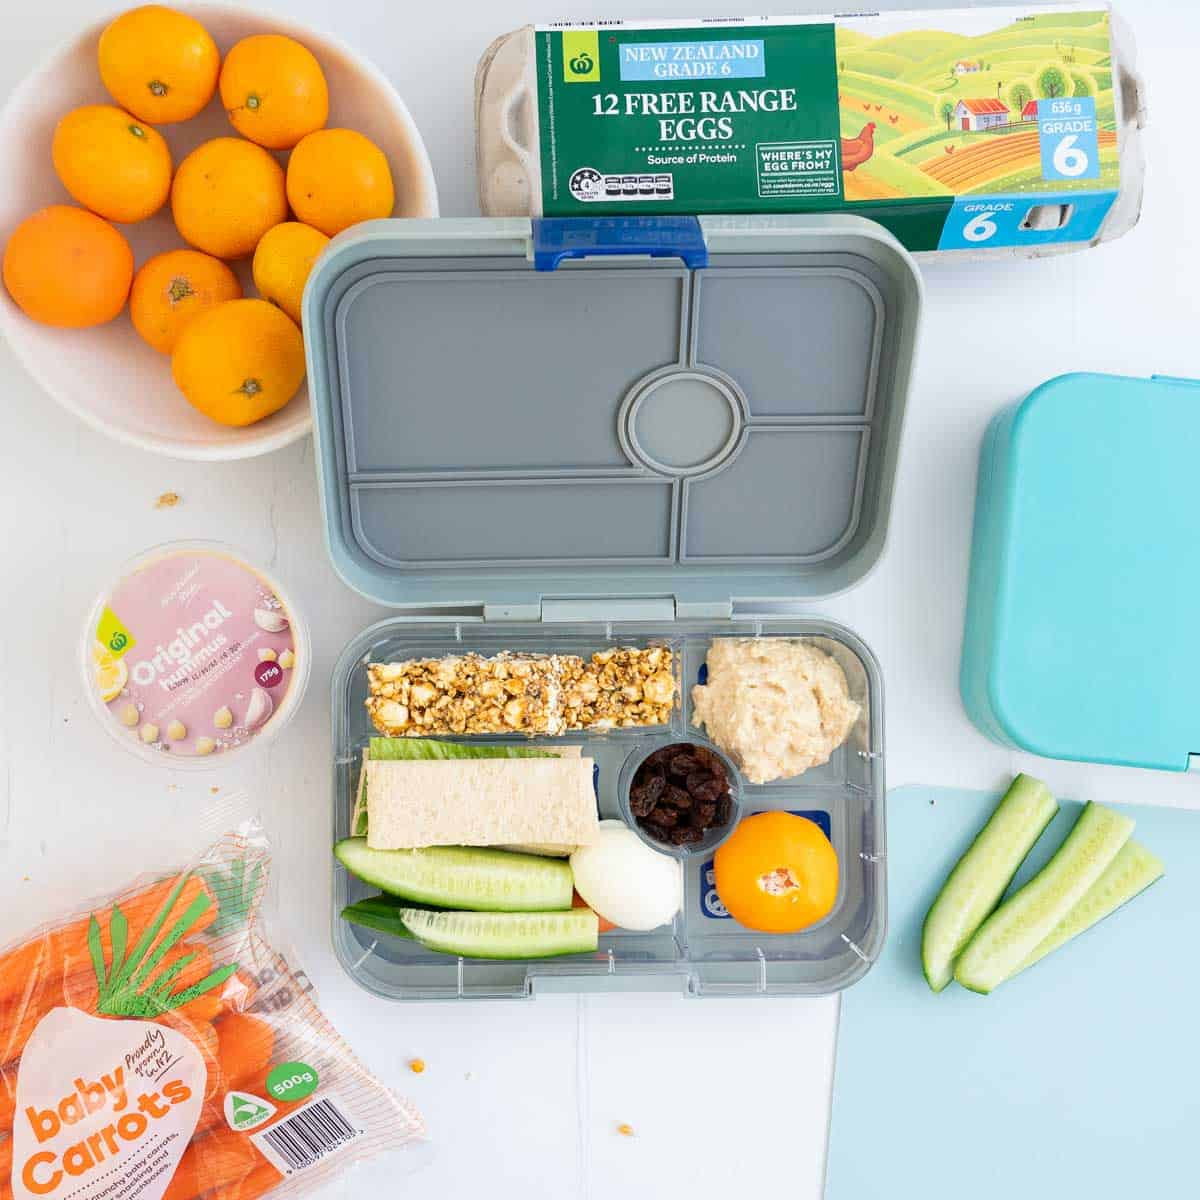 A child's bento style lunchbox packed with an assortment of food including popcorn bars.